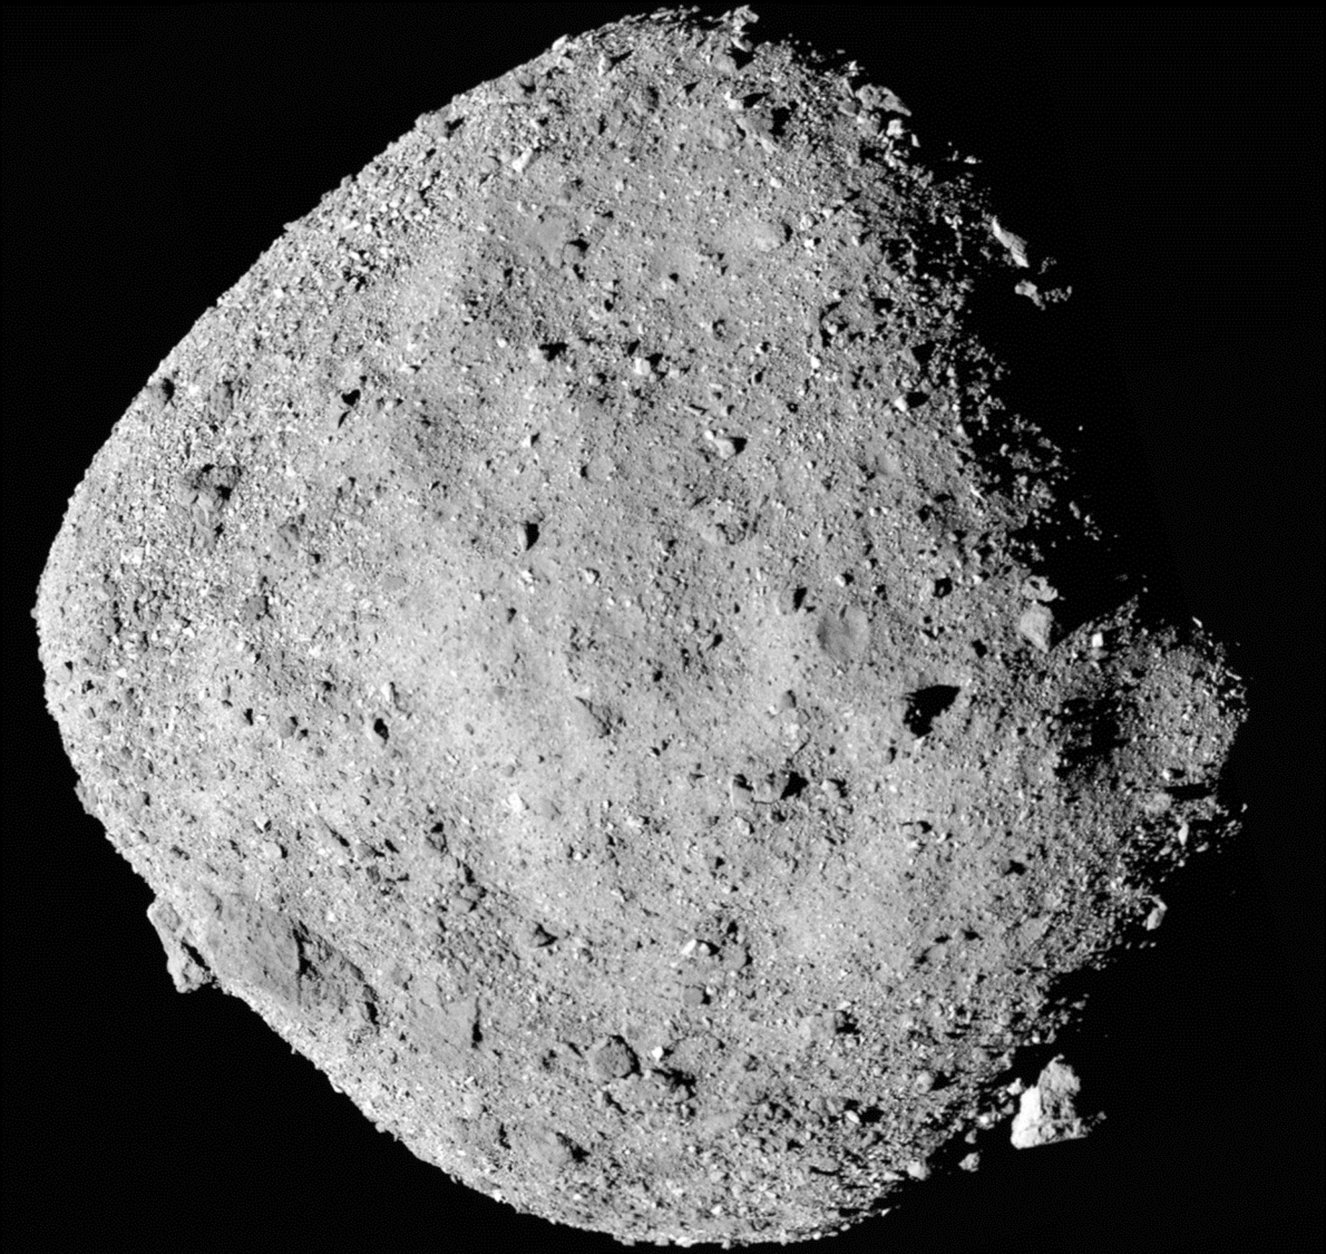 FILE - This file mosaic image composed of 12 PolyCam images collected on Dec. 2, 2018, and provided by NASA shows the asteroid Bennu. The Osiris-Rex spacecraft entered orbit Monday, Dec. 31, 2018, around the asteroid Bennu, 70 million miles (110 million kilometers) from Earth. It's the smallest celestial body ever to be orbited by a spacecraft. Bennu is just 1,600 feet (500 meters) across. (NASA/Goddard/University of Arizona via AP, File)